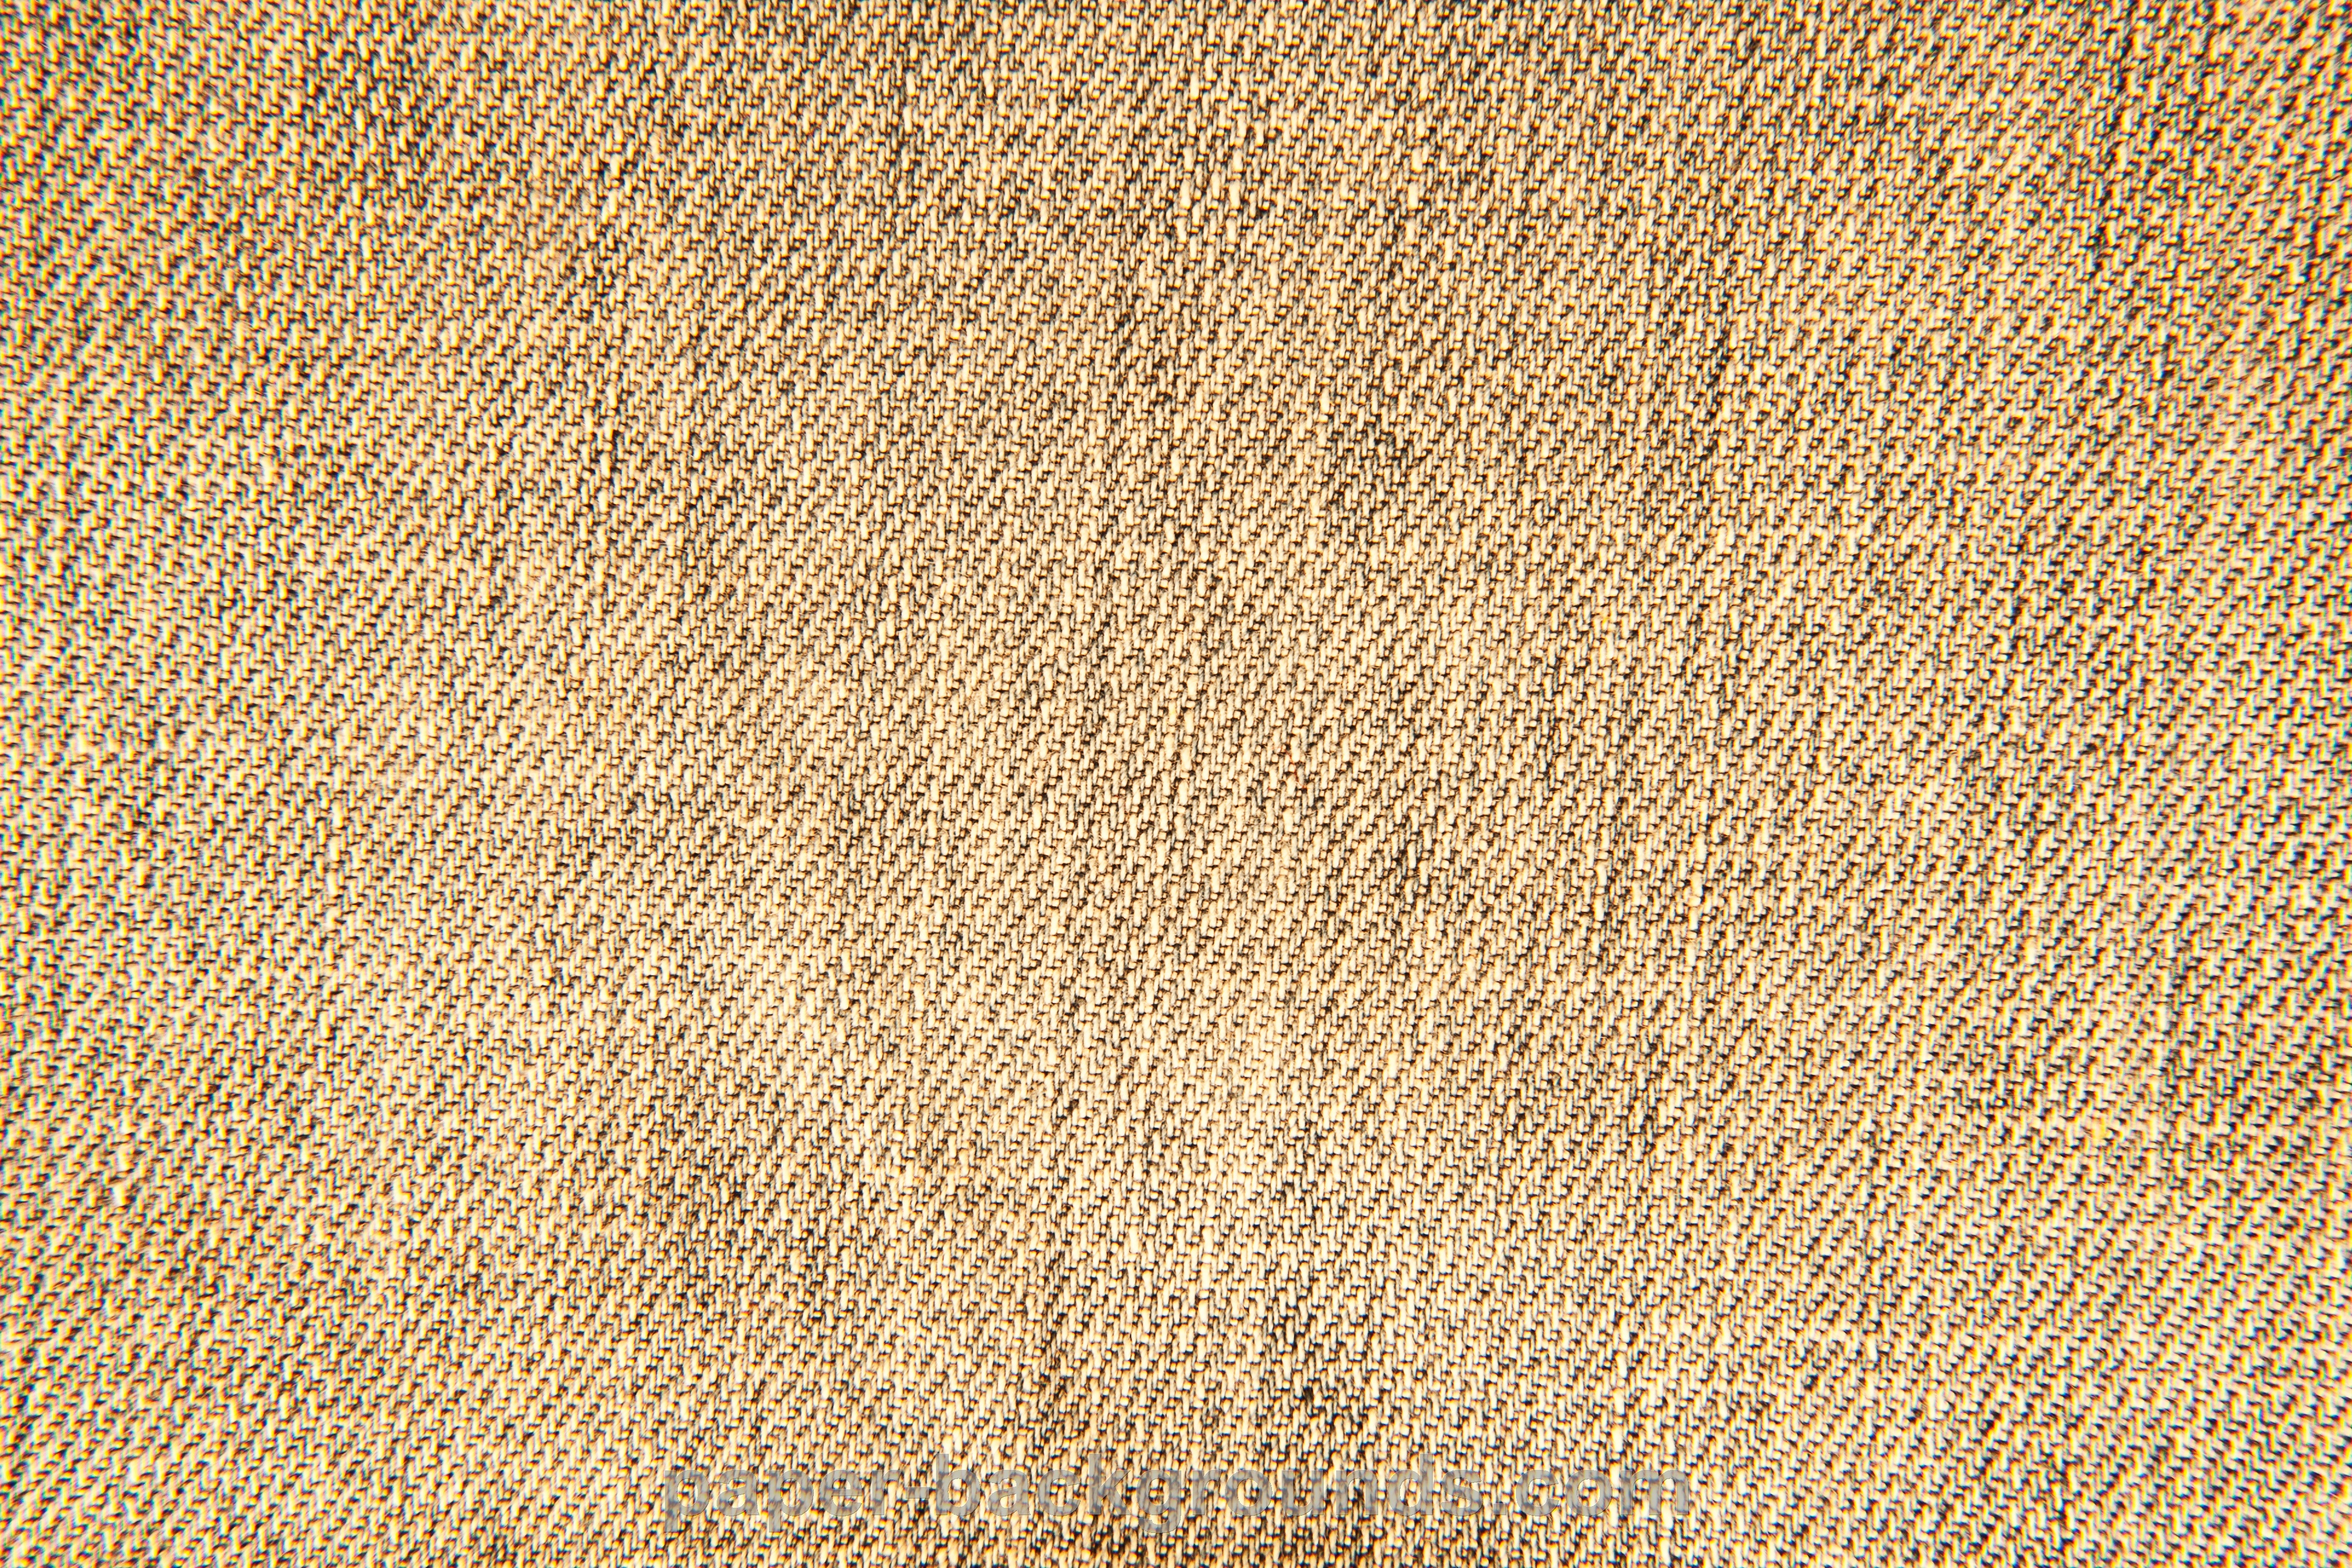 Download Brown Fabric Wallpaper Gallery